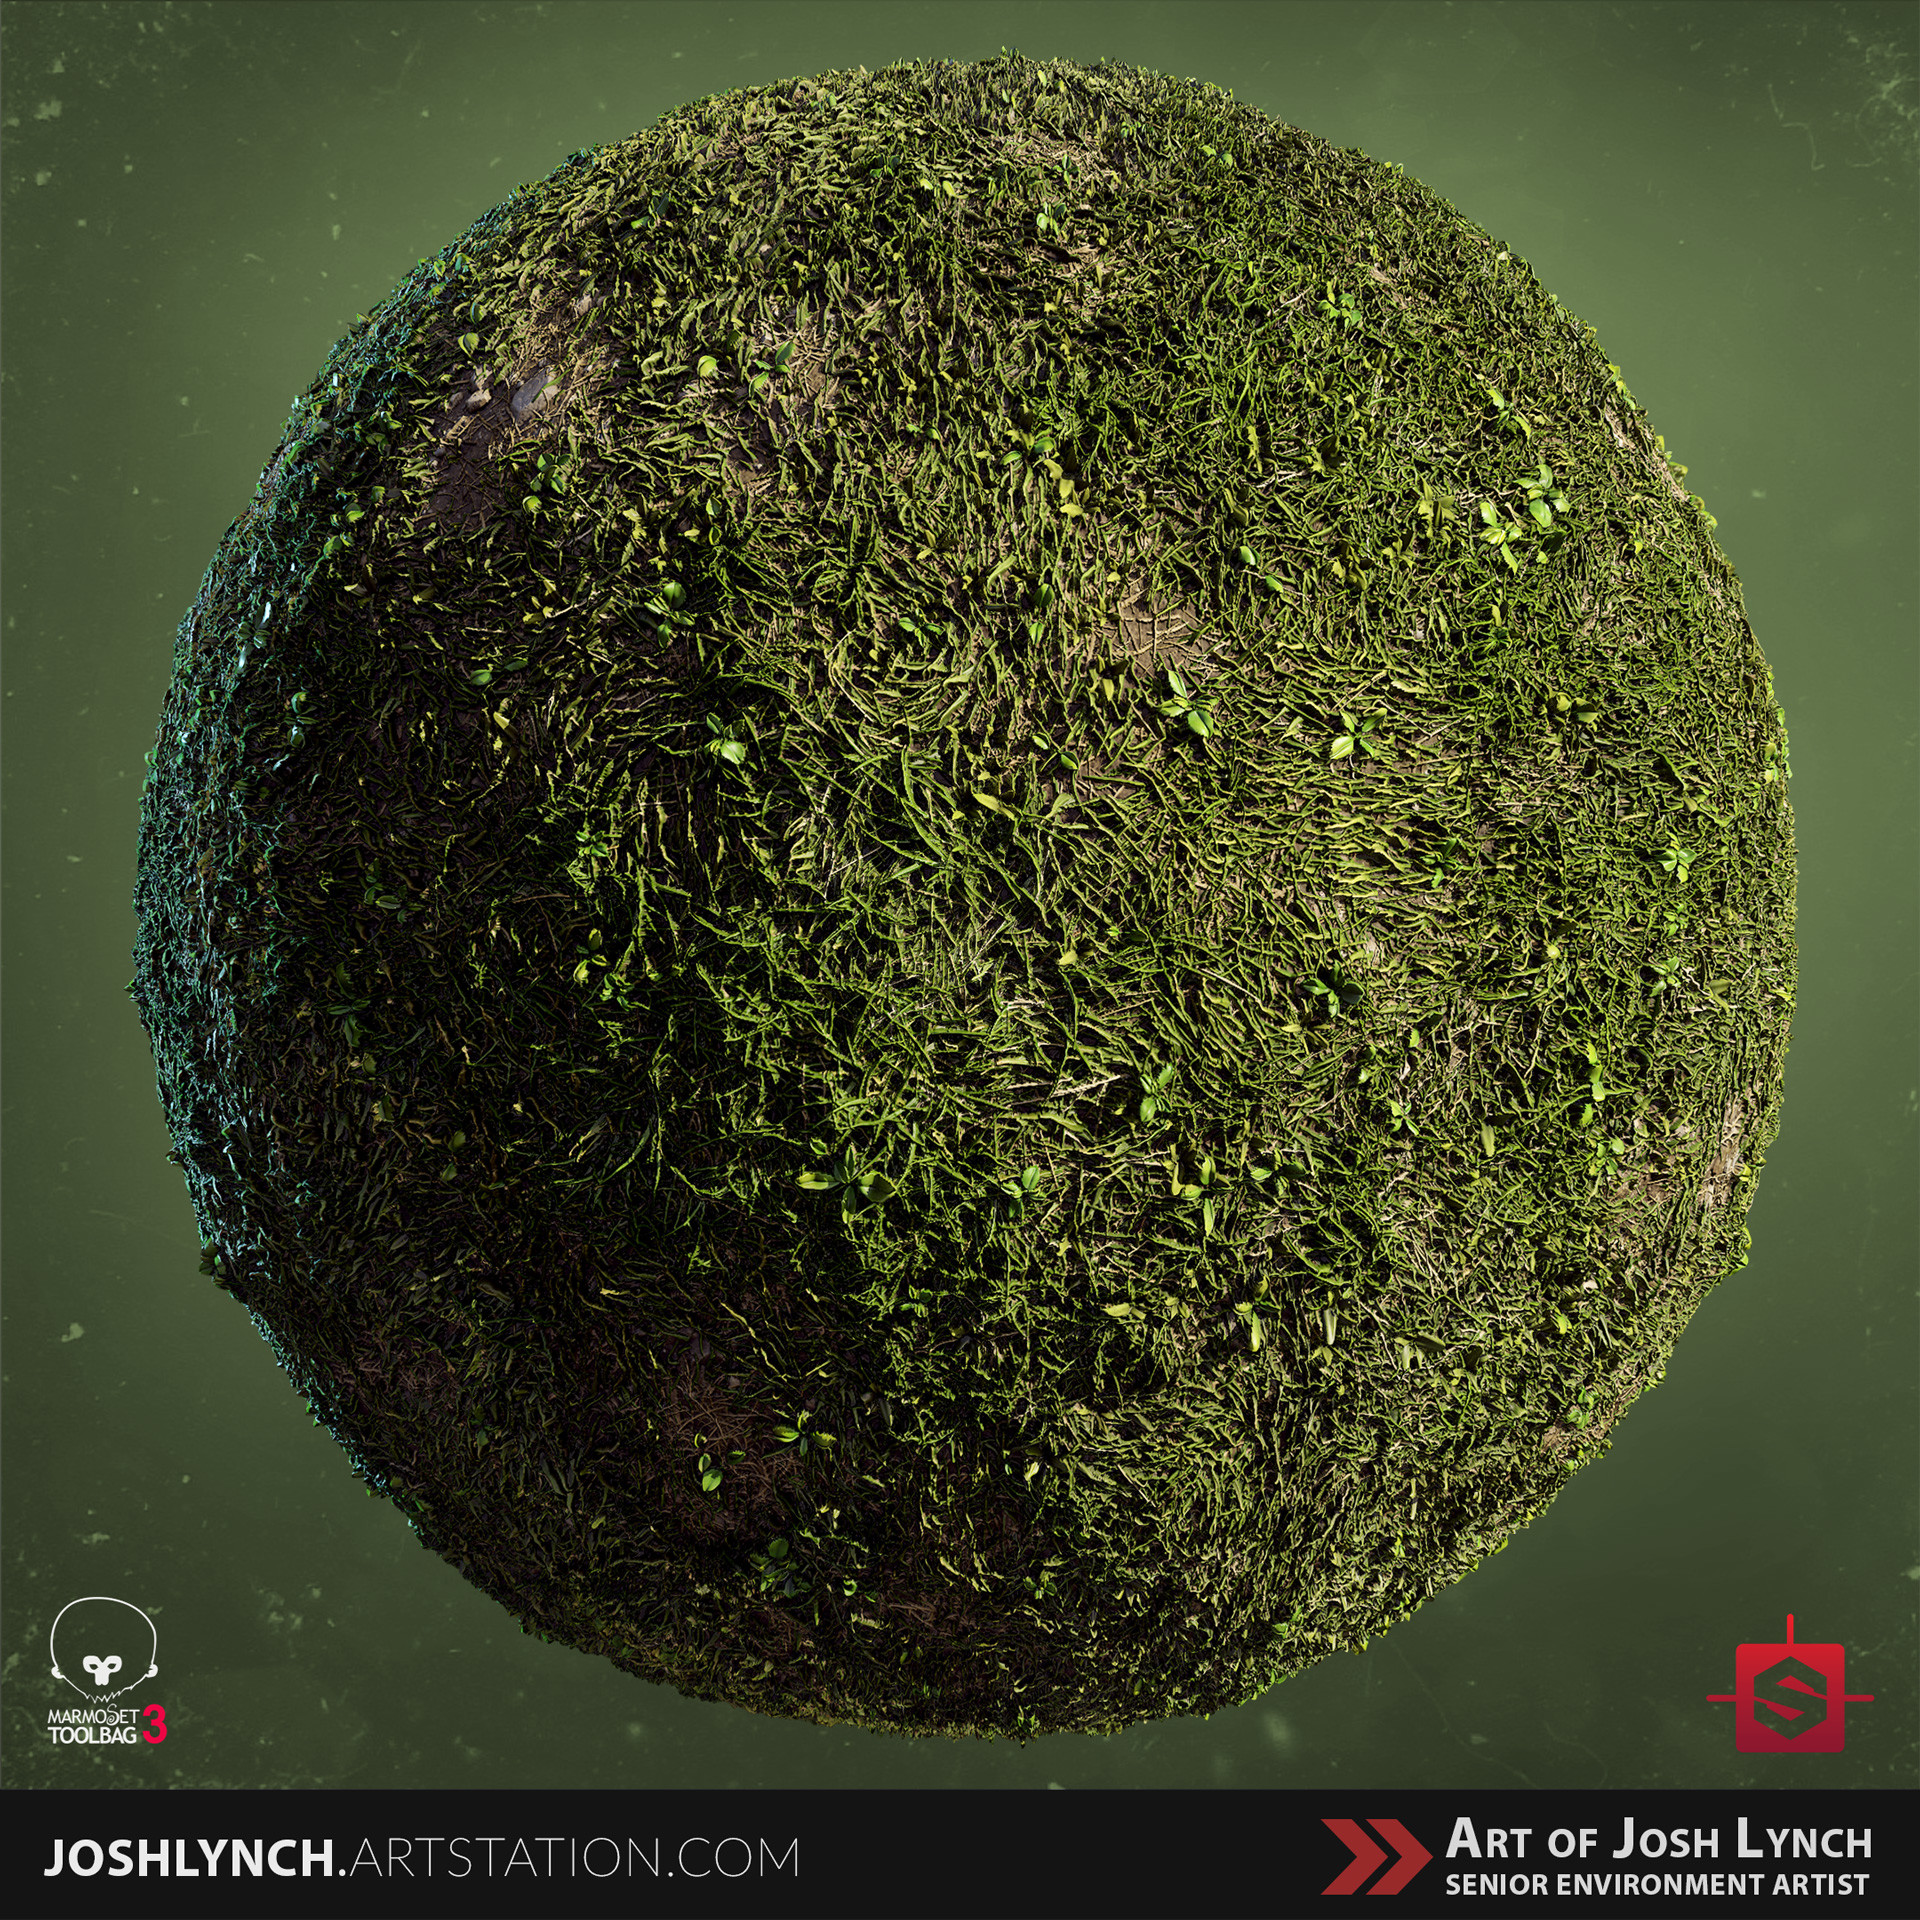 Joshua lynch ground grass 02 layout comp square sphere 01